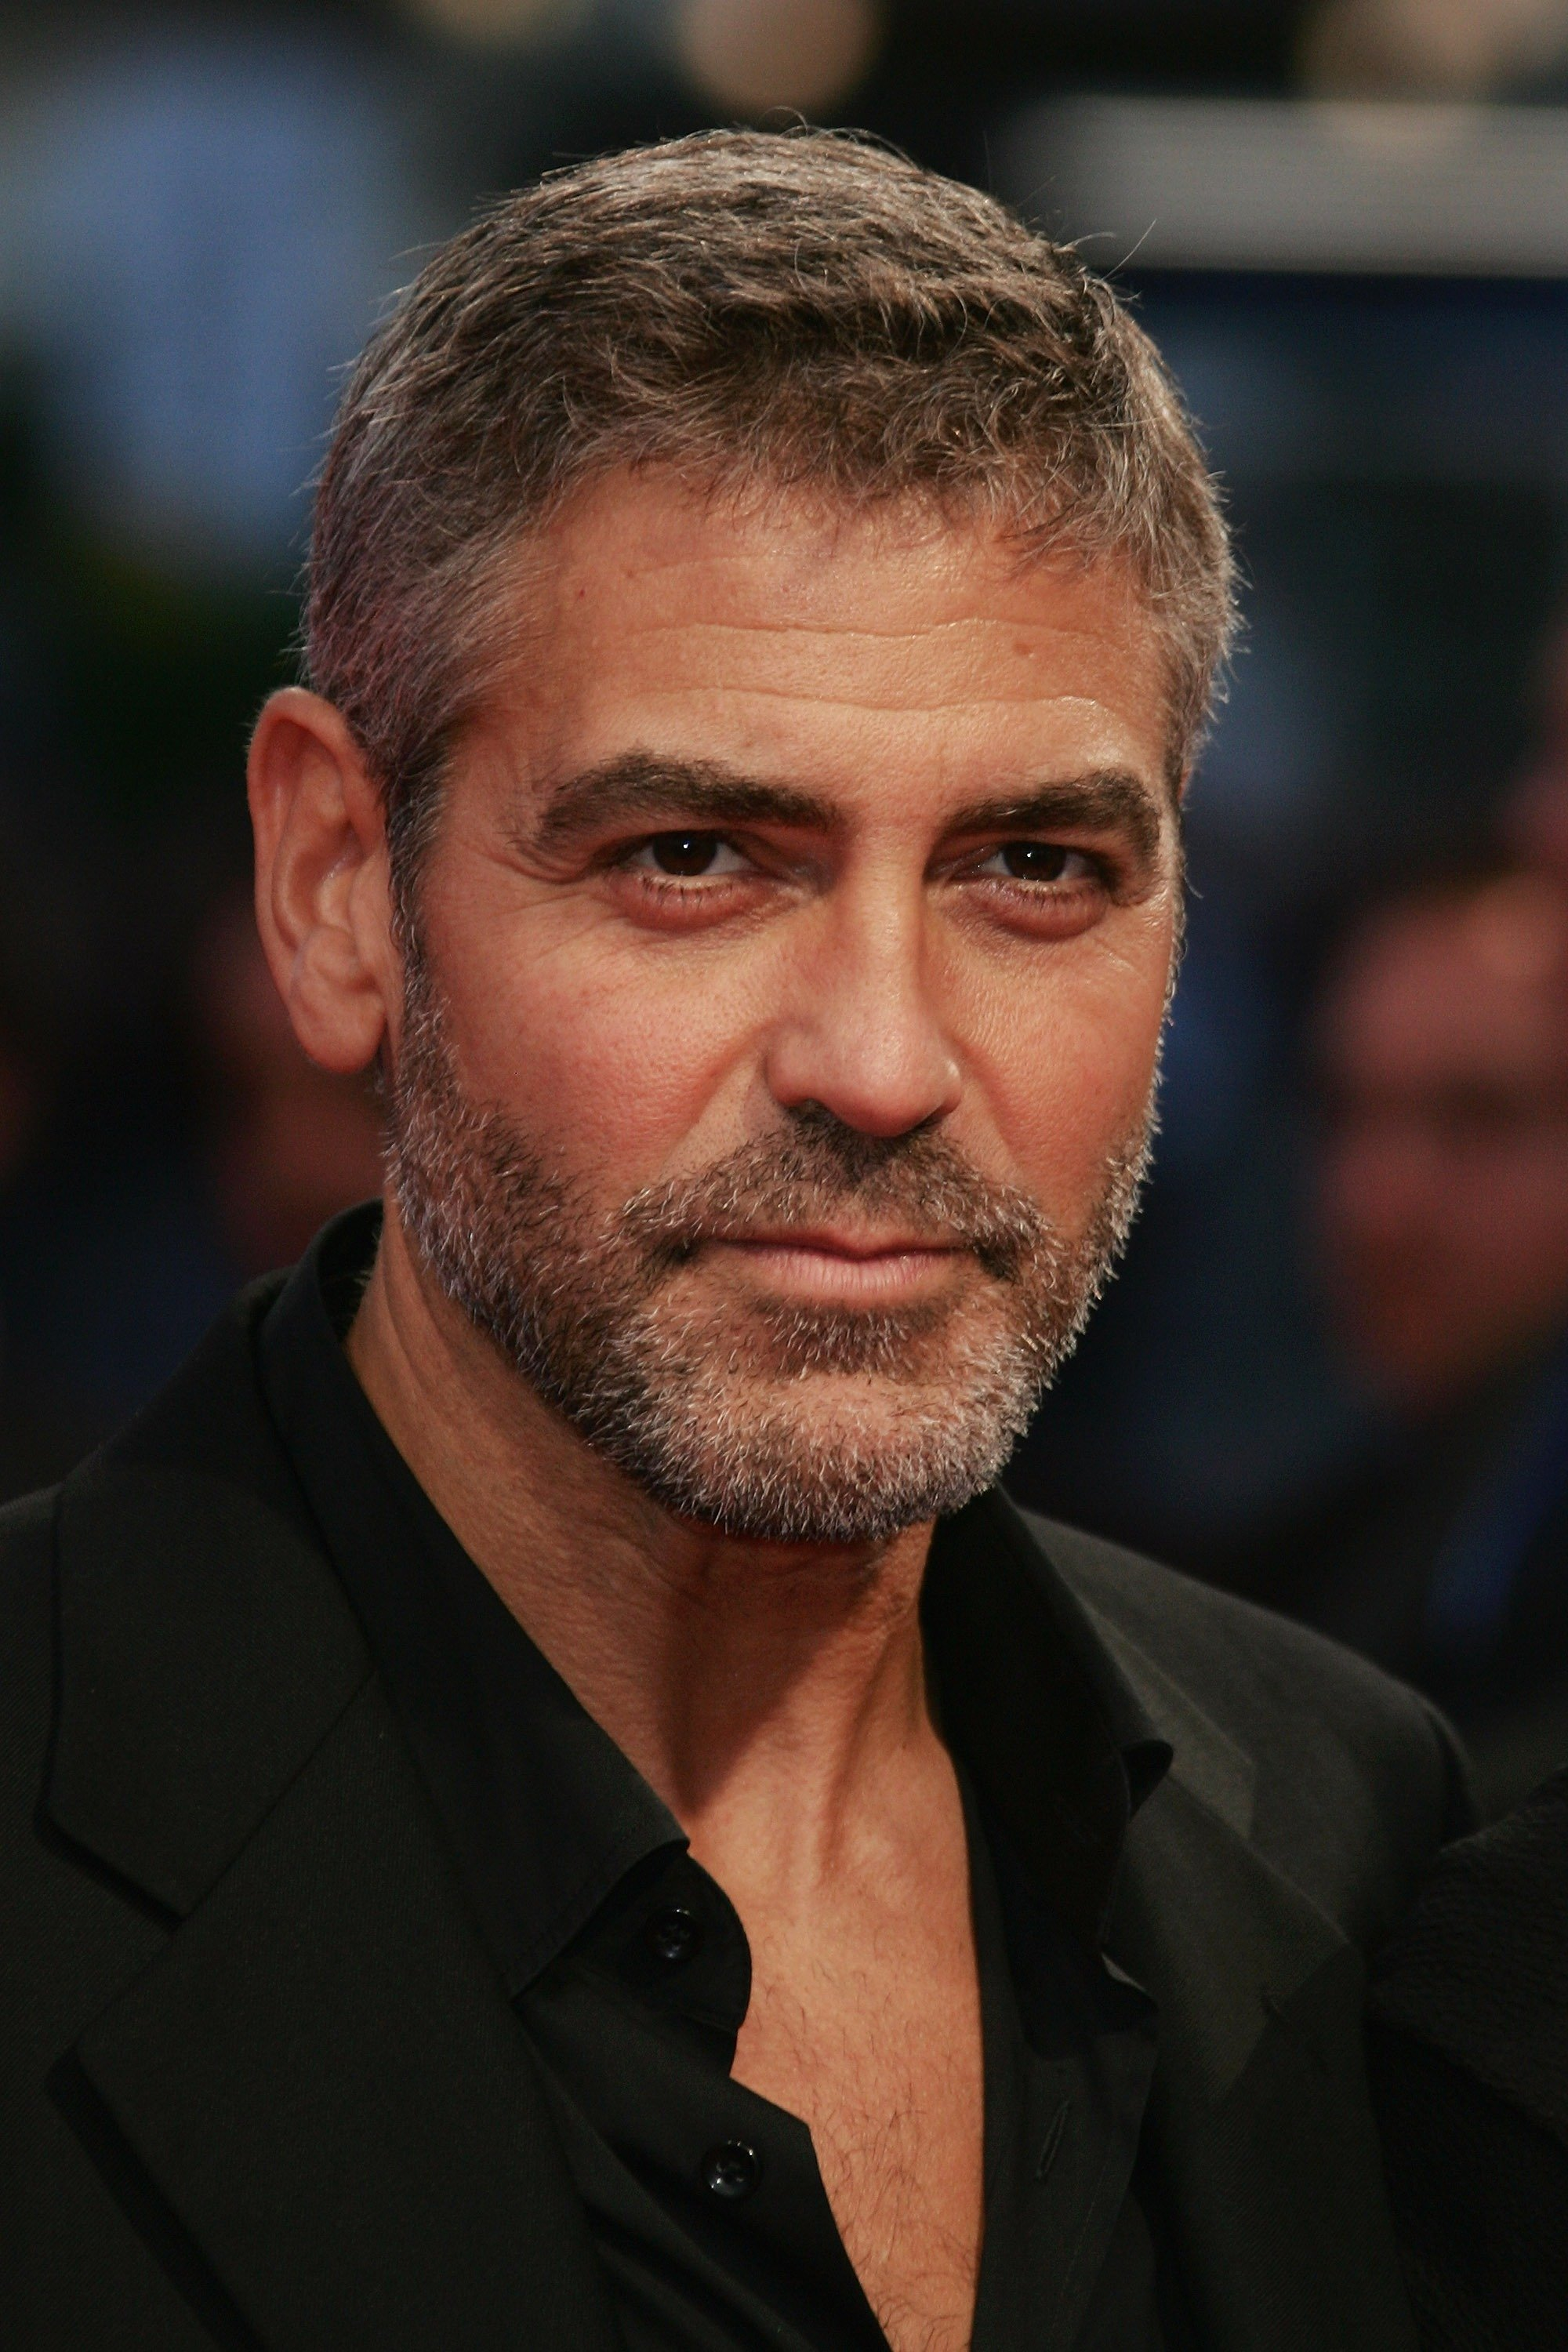 George Clooney poses as he arrives to attend the premiere of Michael Clayton during the 33rd Deauville American Film Festival, on September 2, 2007, in Deauville, France. | Source: Getty Images.